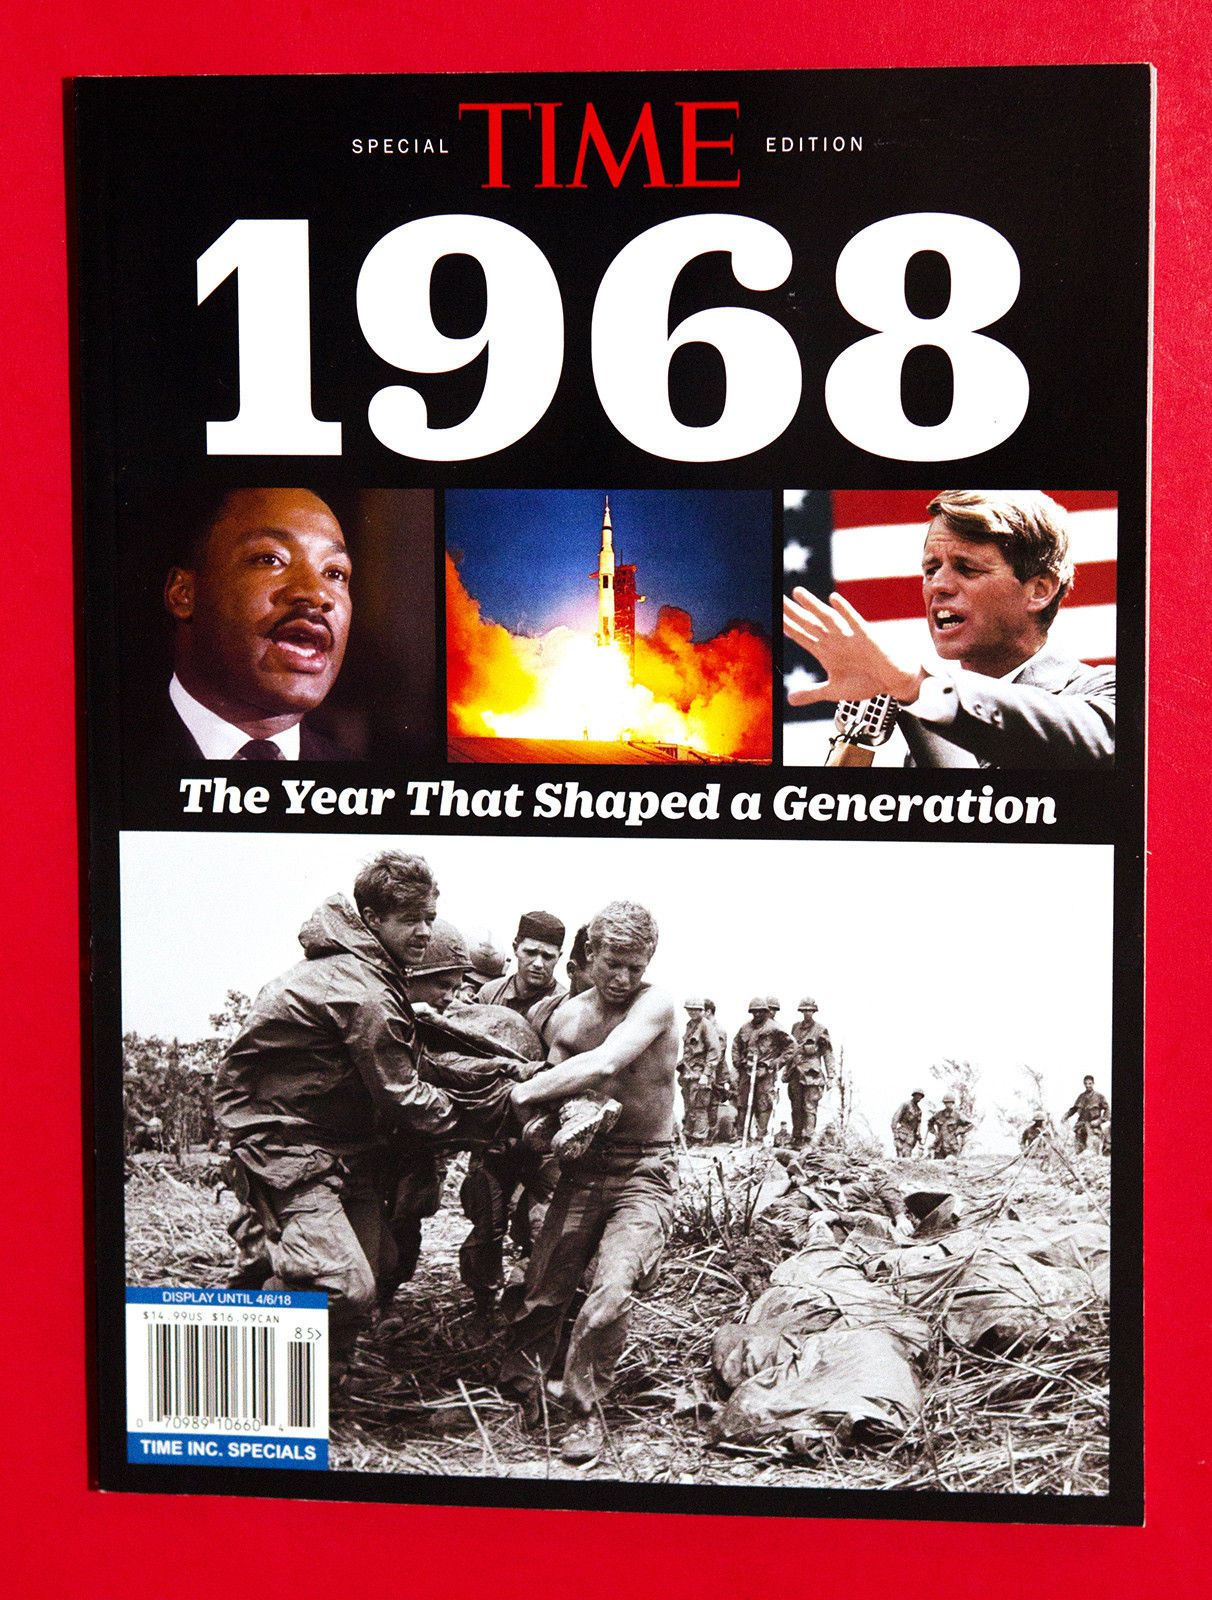 Related image Generation time, Time inc, Poster